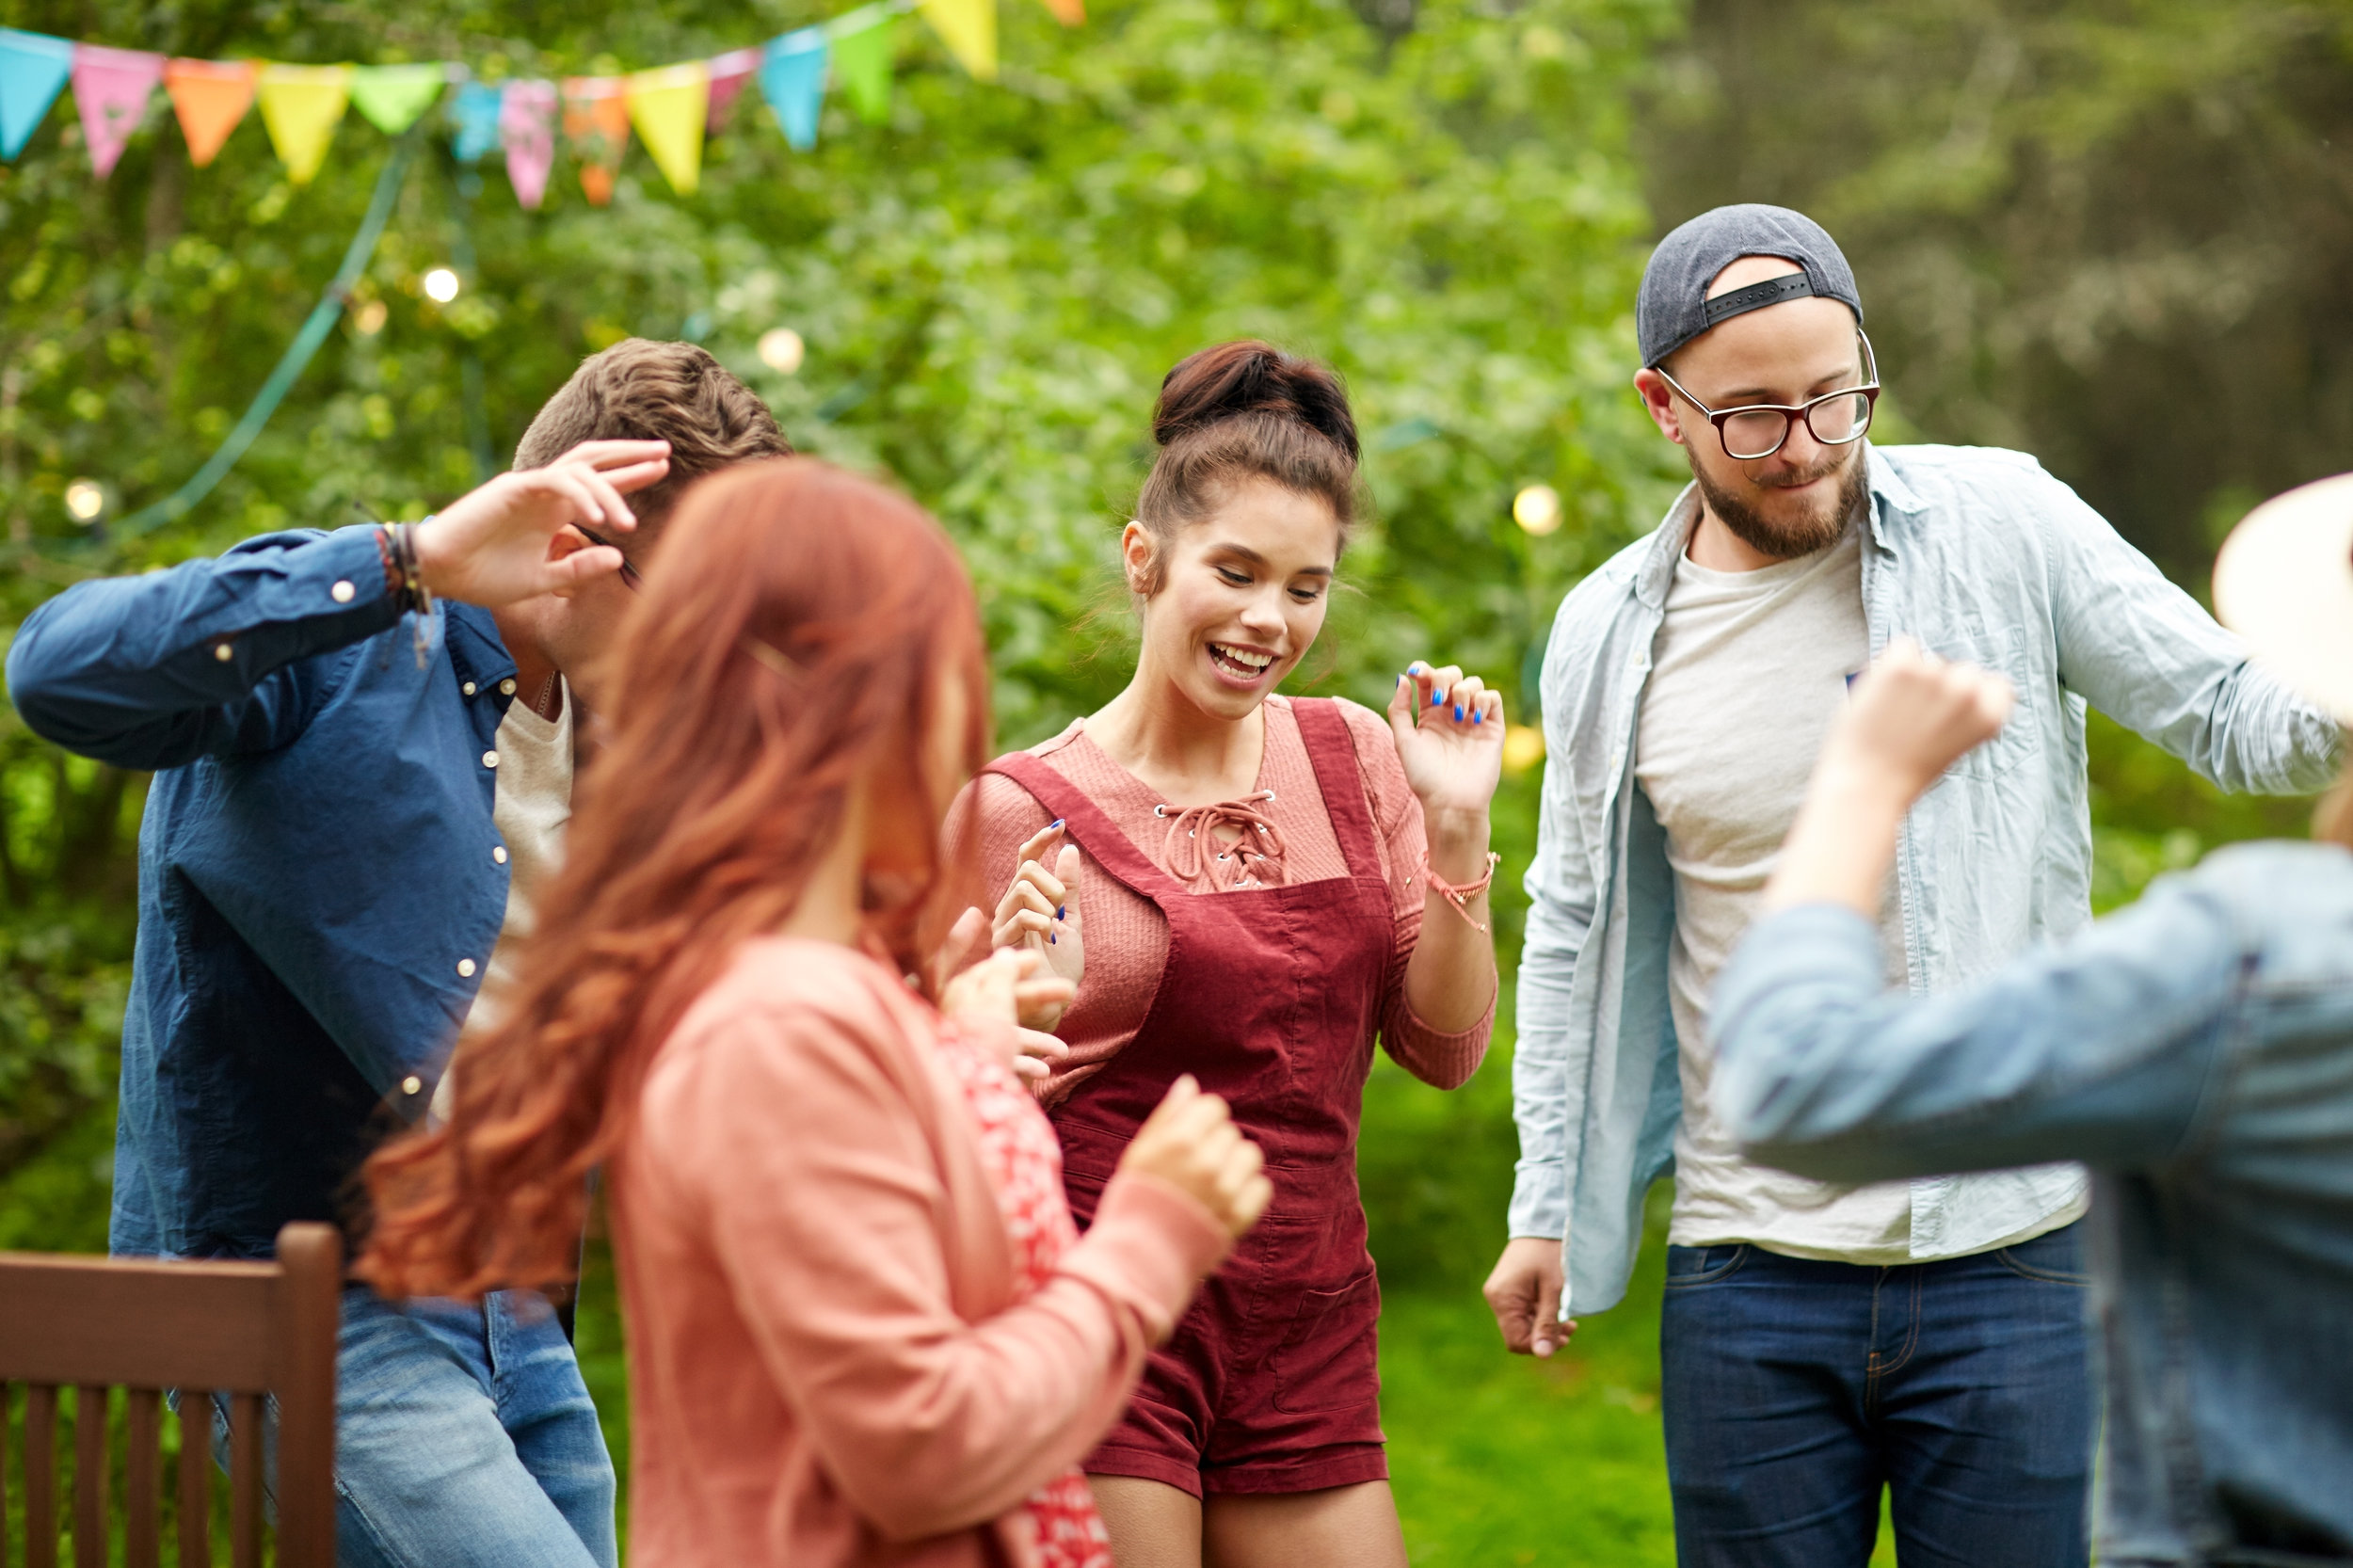 happy-friends-dancing-at-summer-party-in-garden-PLYPGLF.jpg